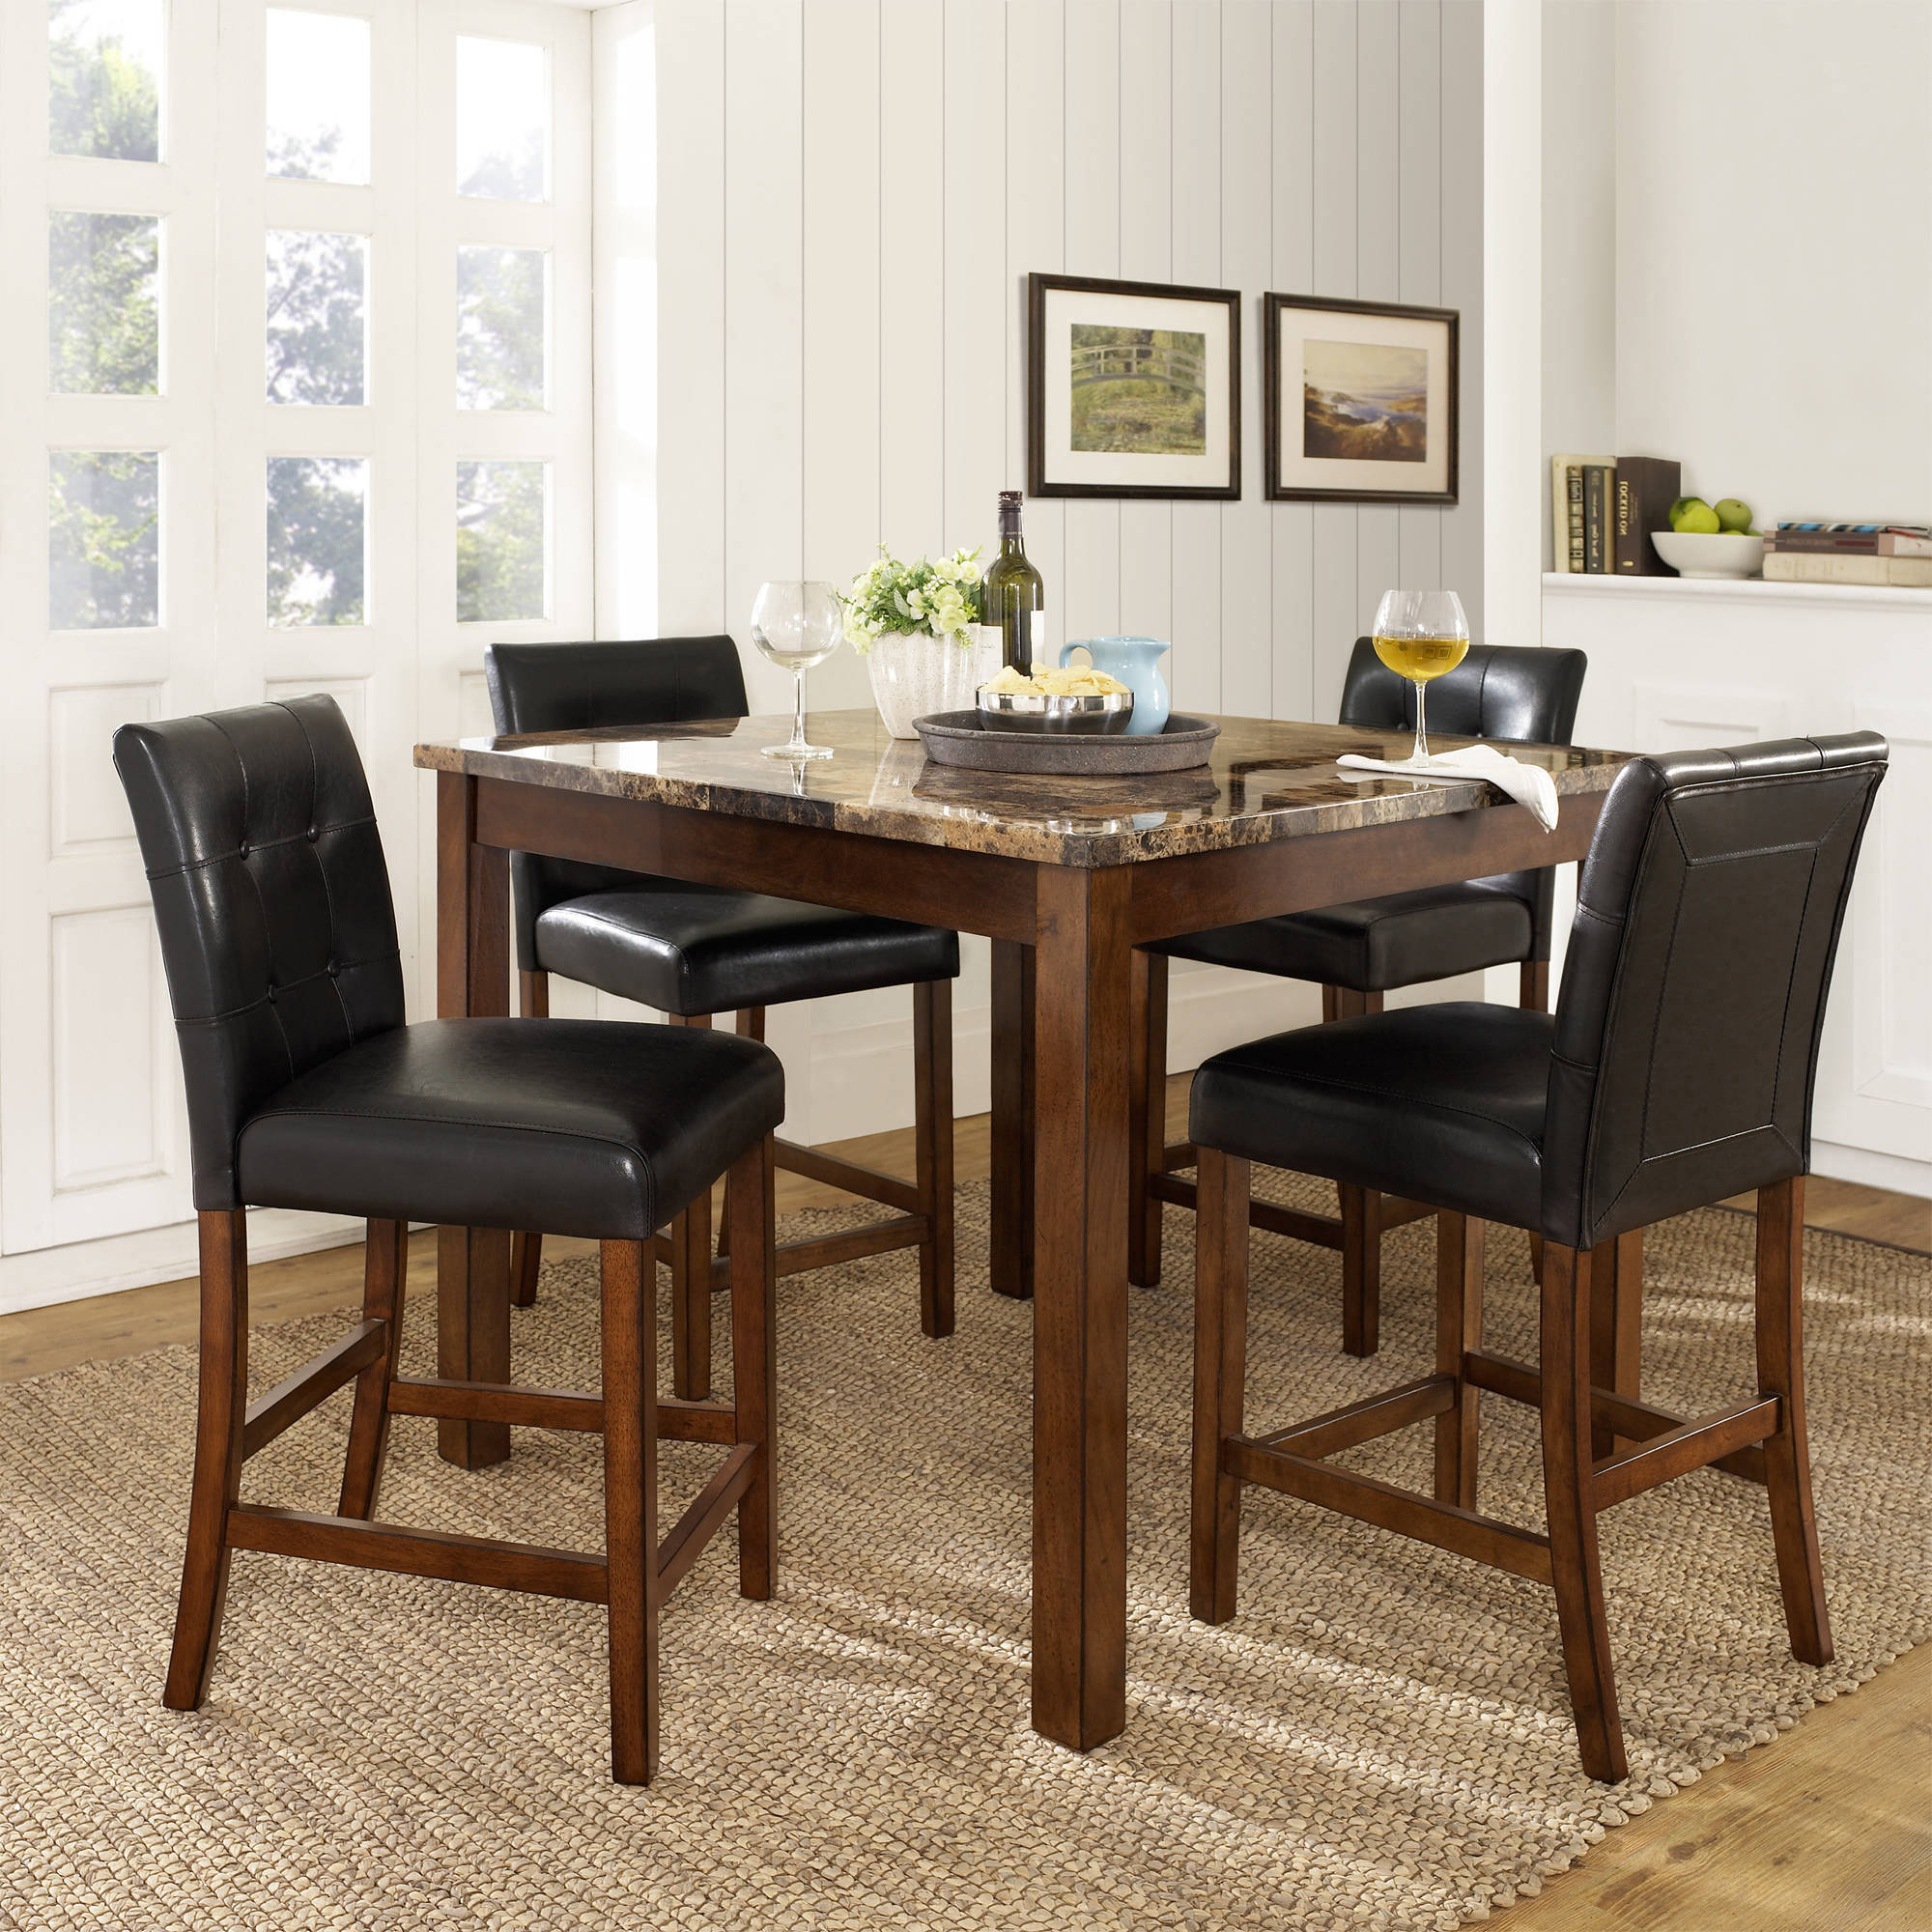 Trendy 5 Piece Dining Sets For Dorel Living Andover 5 Piece Counter Height Dining Set, Multiple (View 8 of 25)